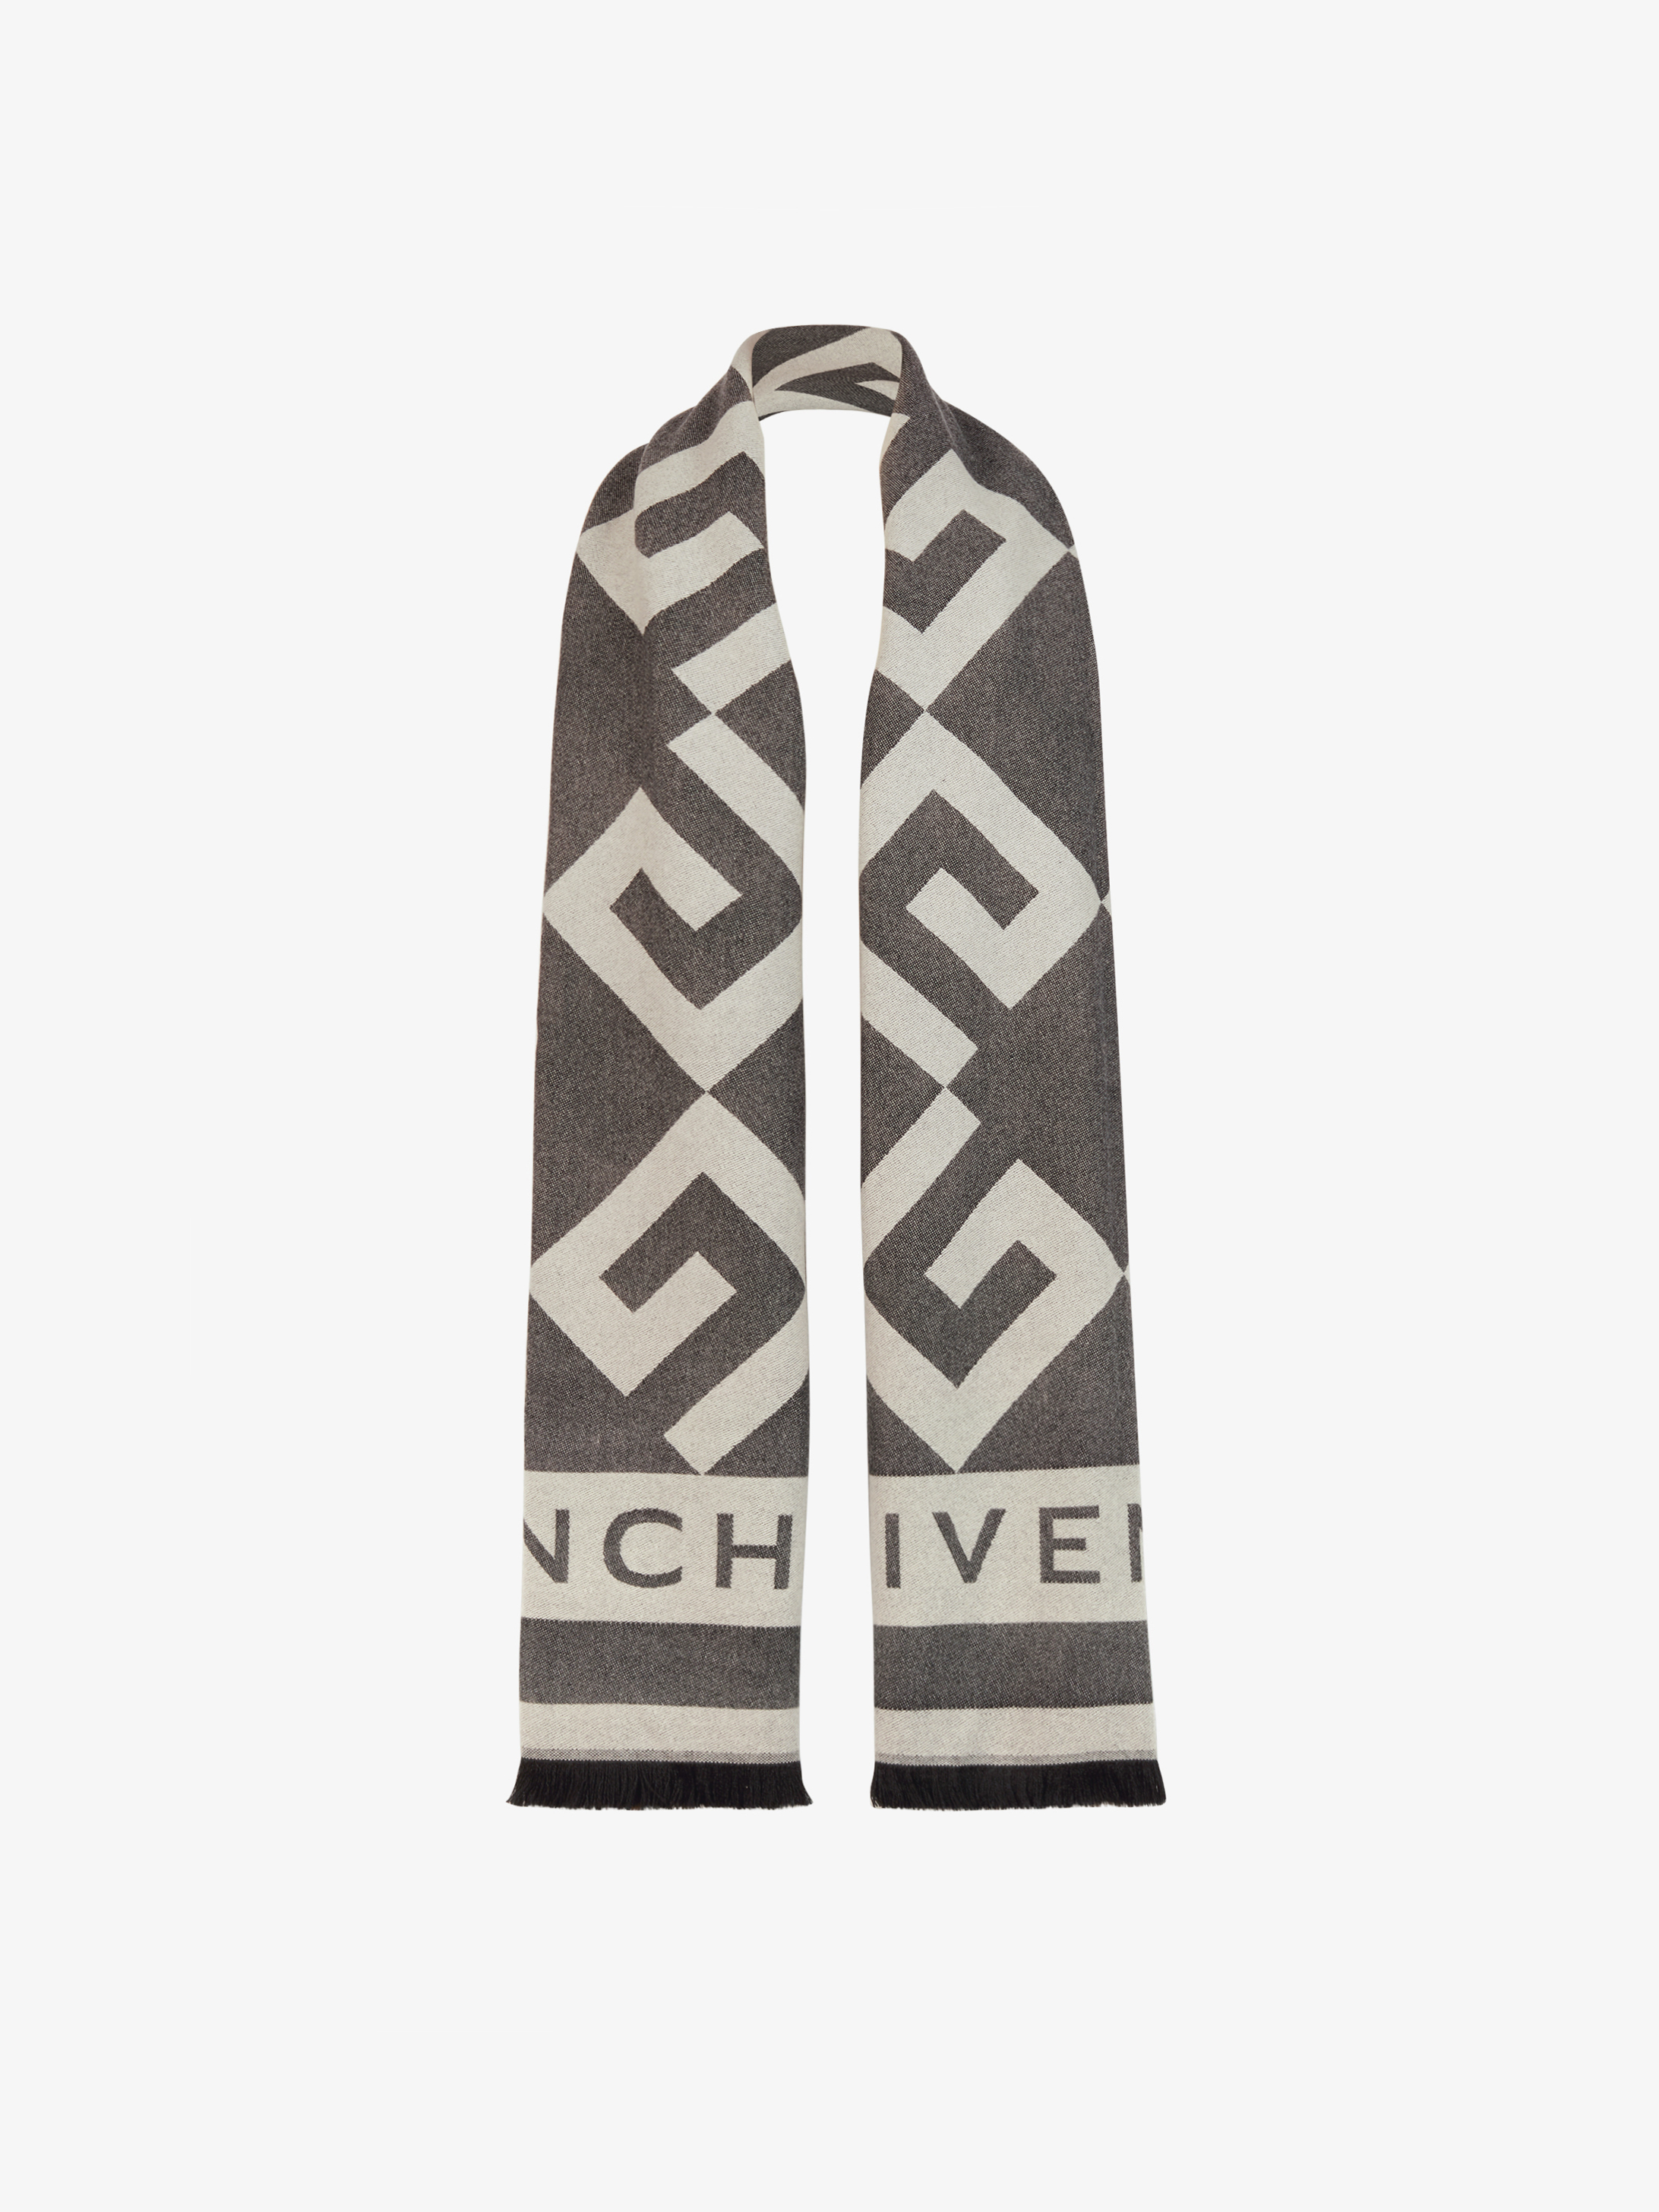 Silk and wool jacquard stole